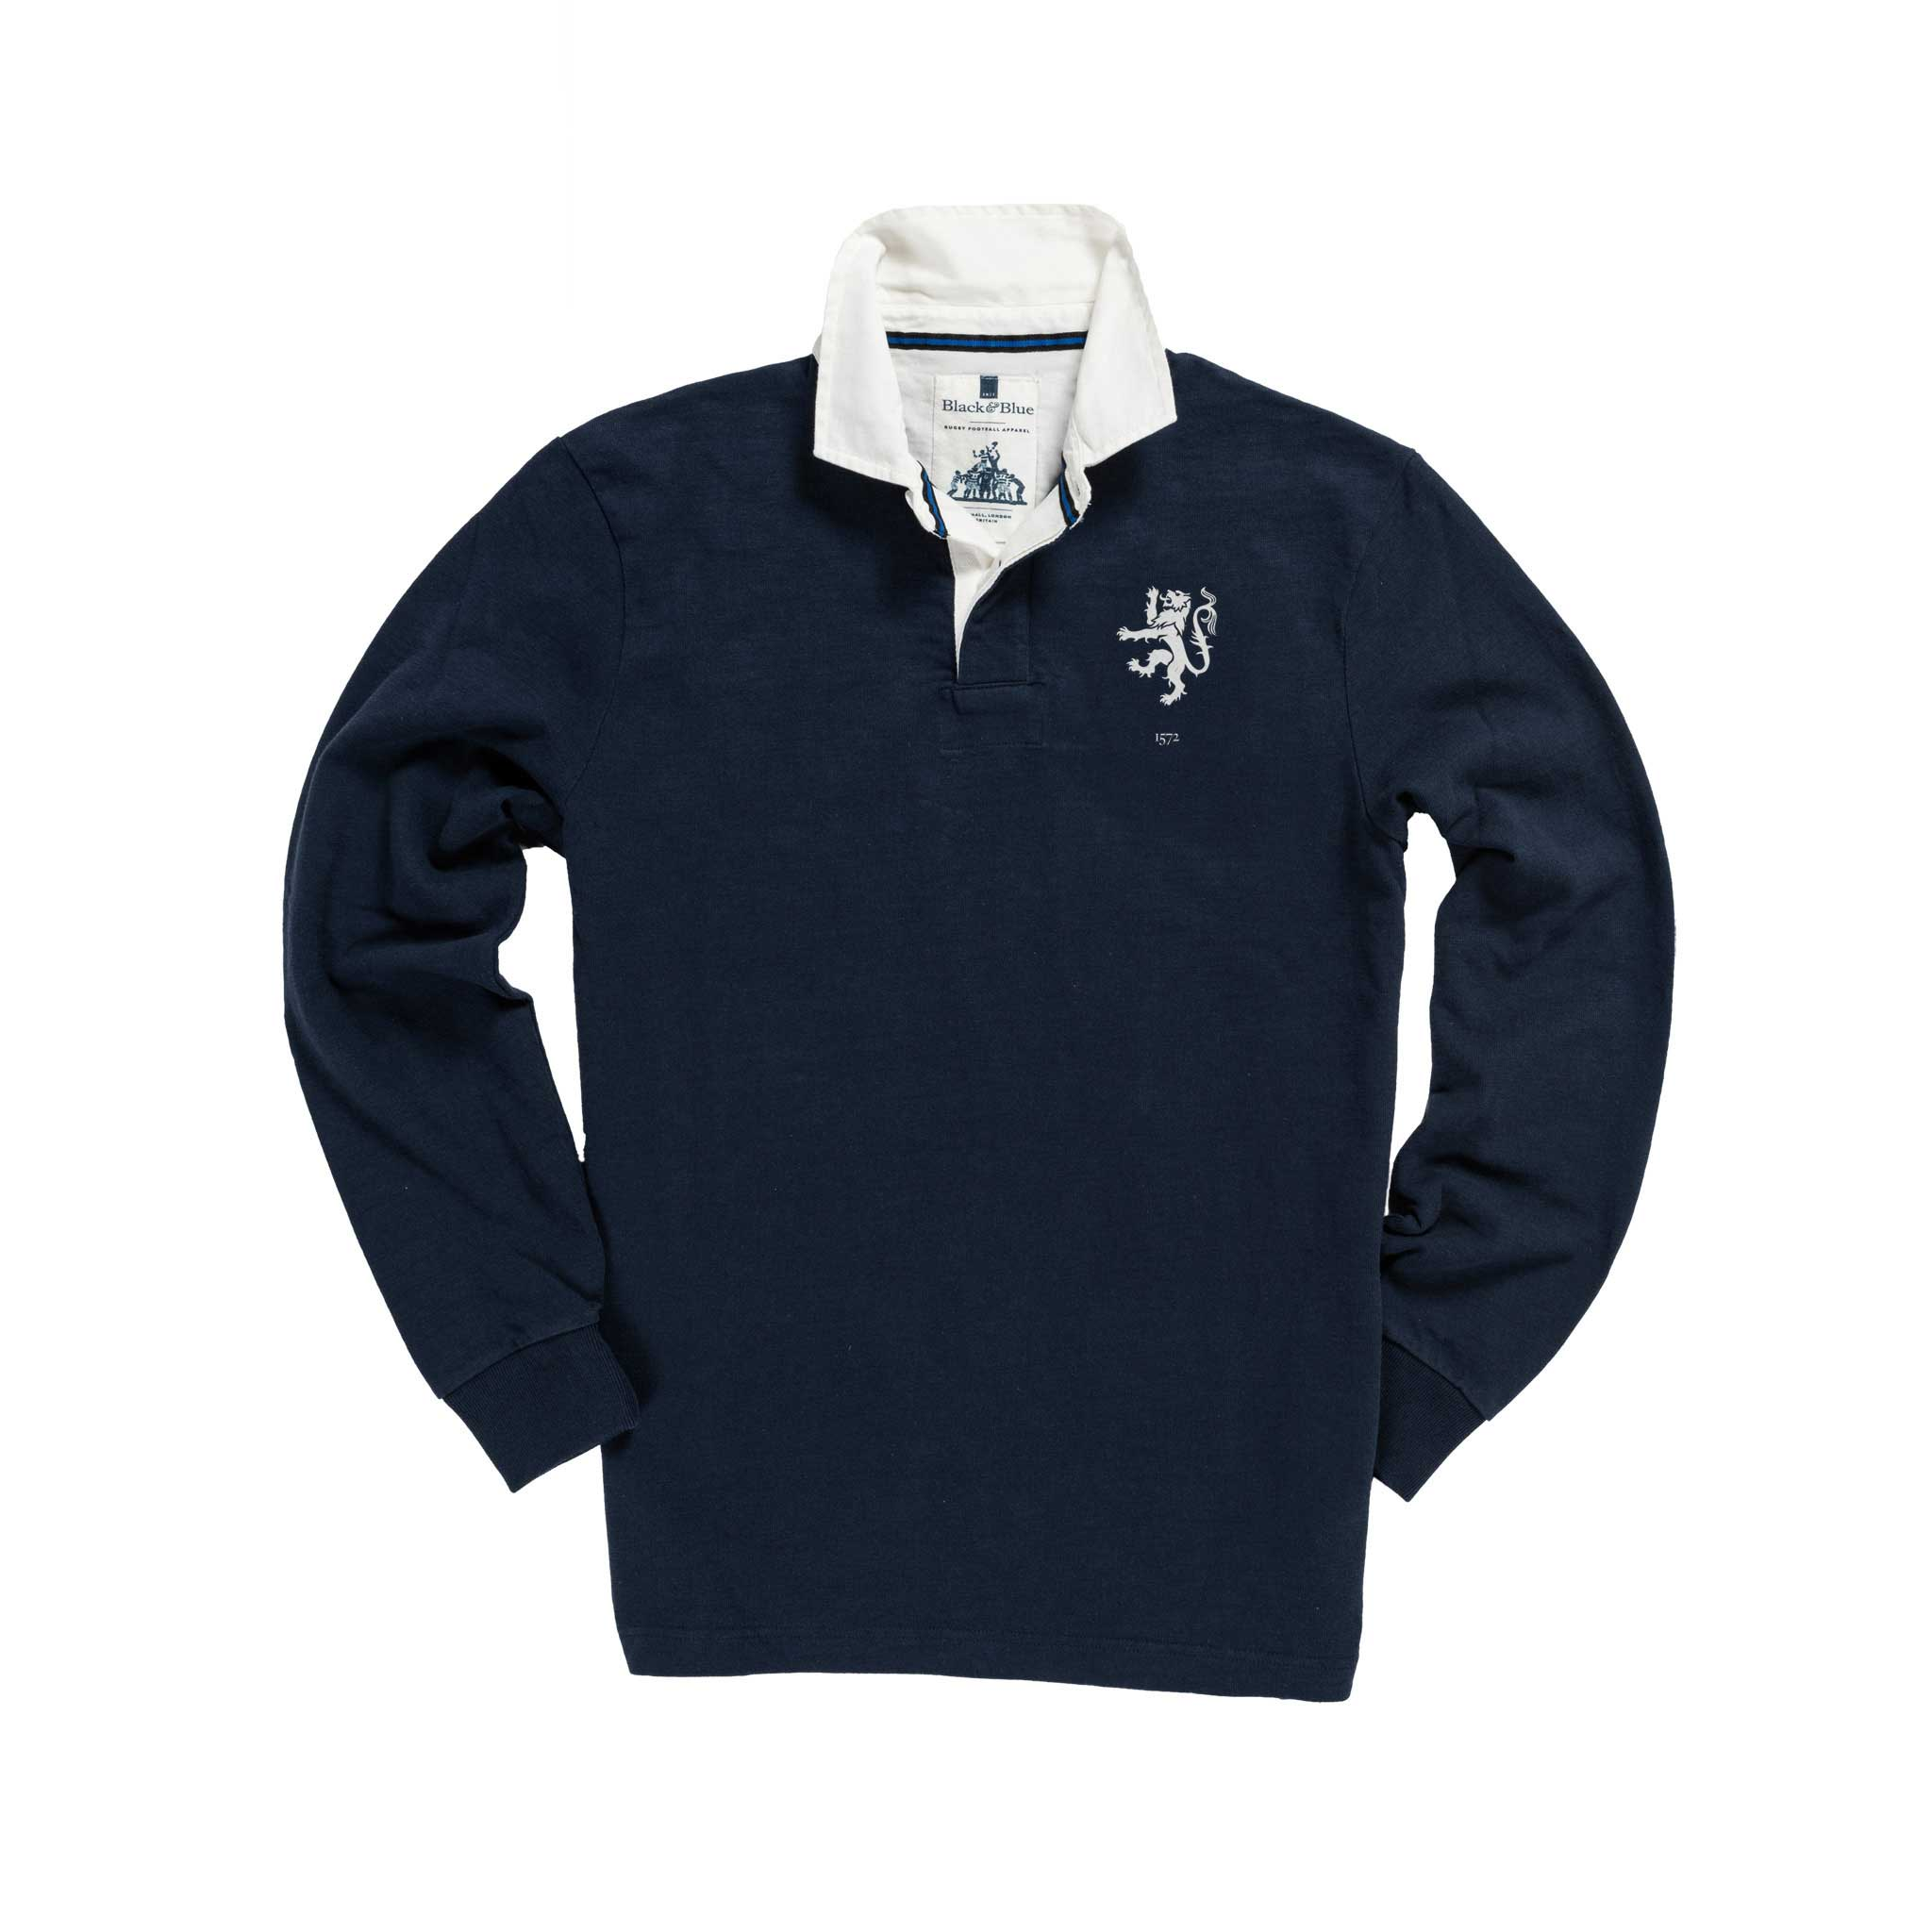 Harrow 1572 Rugby Shirt_Front